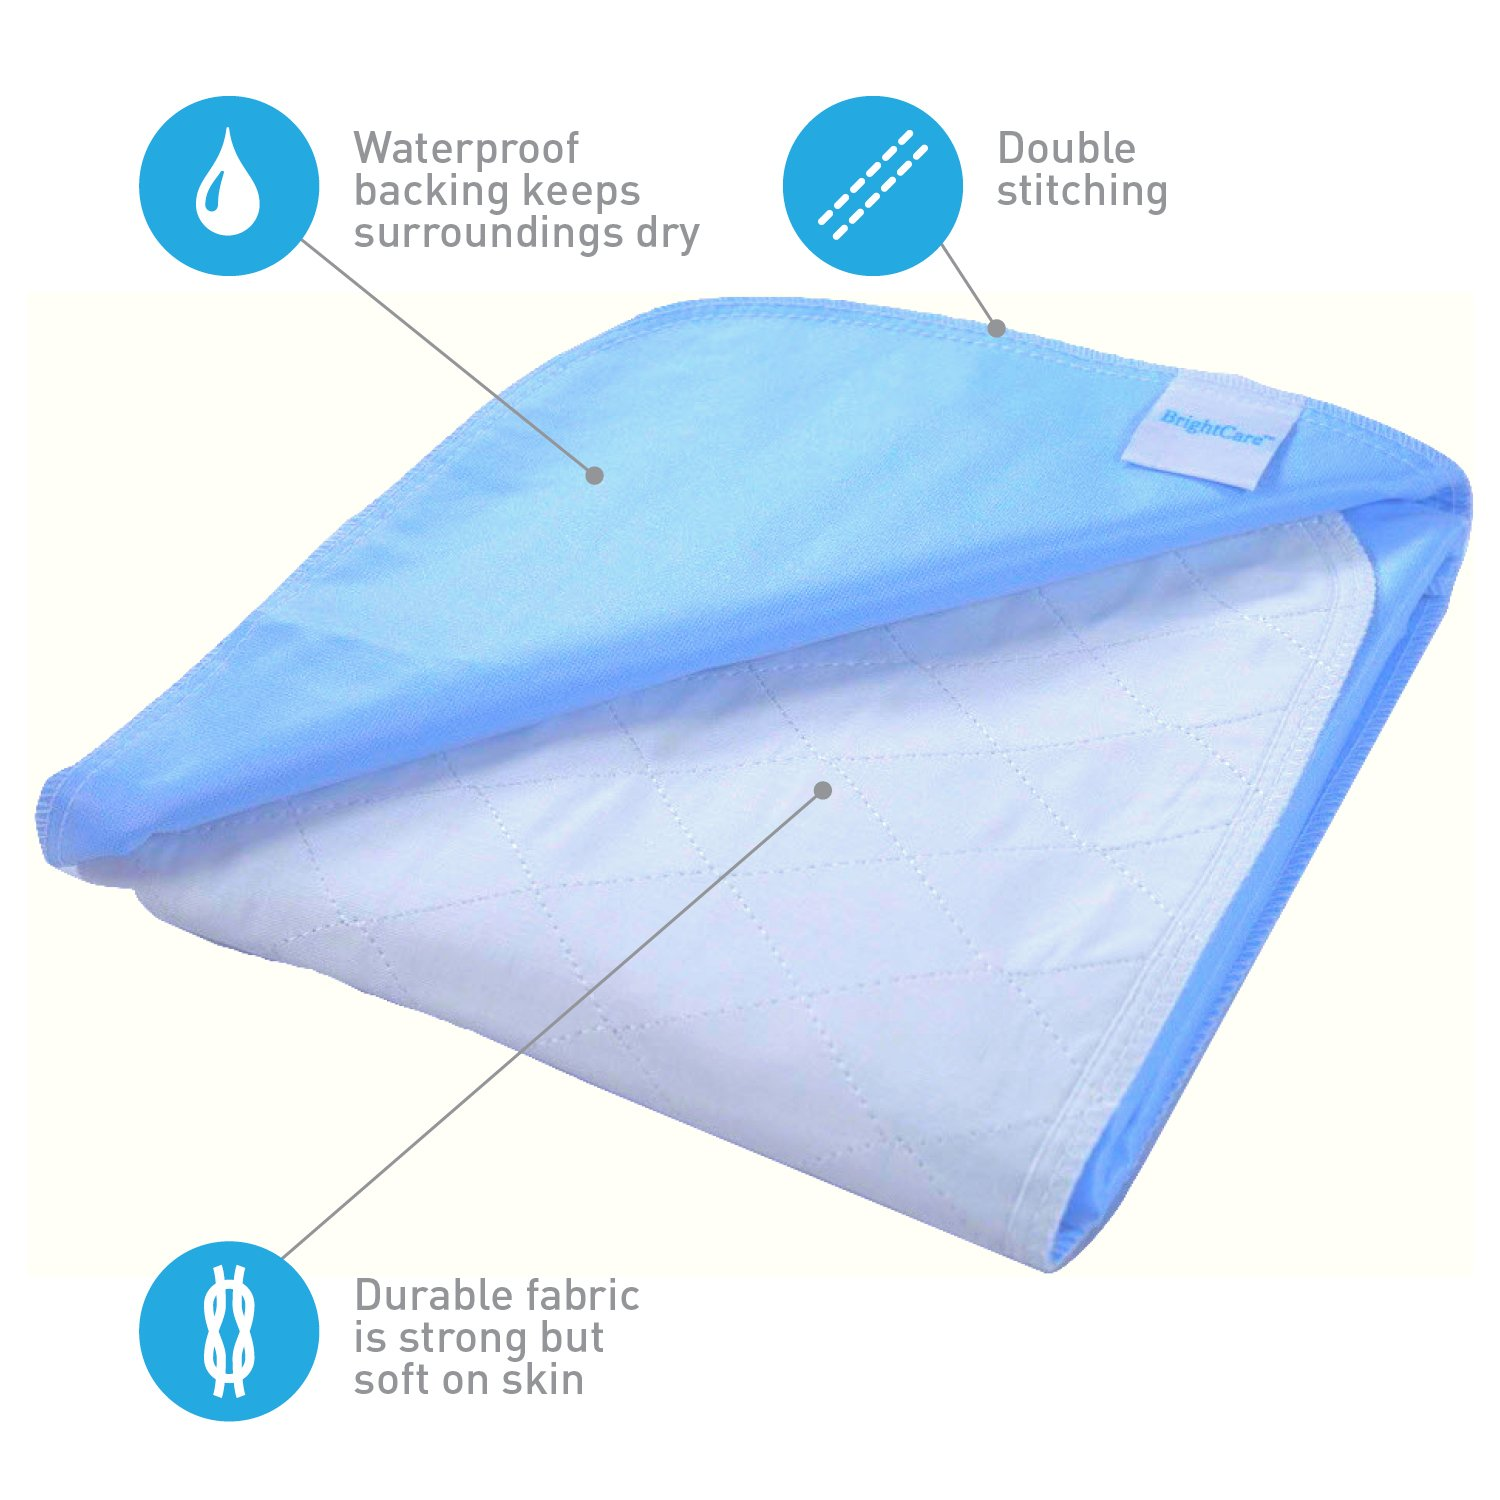 Amazon.com: Extra Large Premium Waterproof Bed Pad (36 x 60 in) - Washable  300x - Underpad protection for Incontinence Adult ,Child, or Pet: Health ...